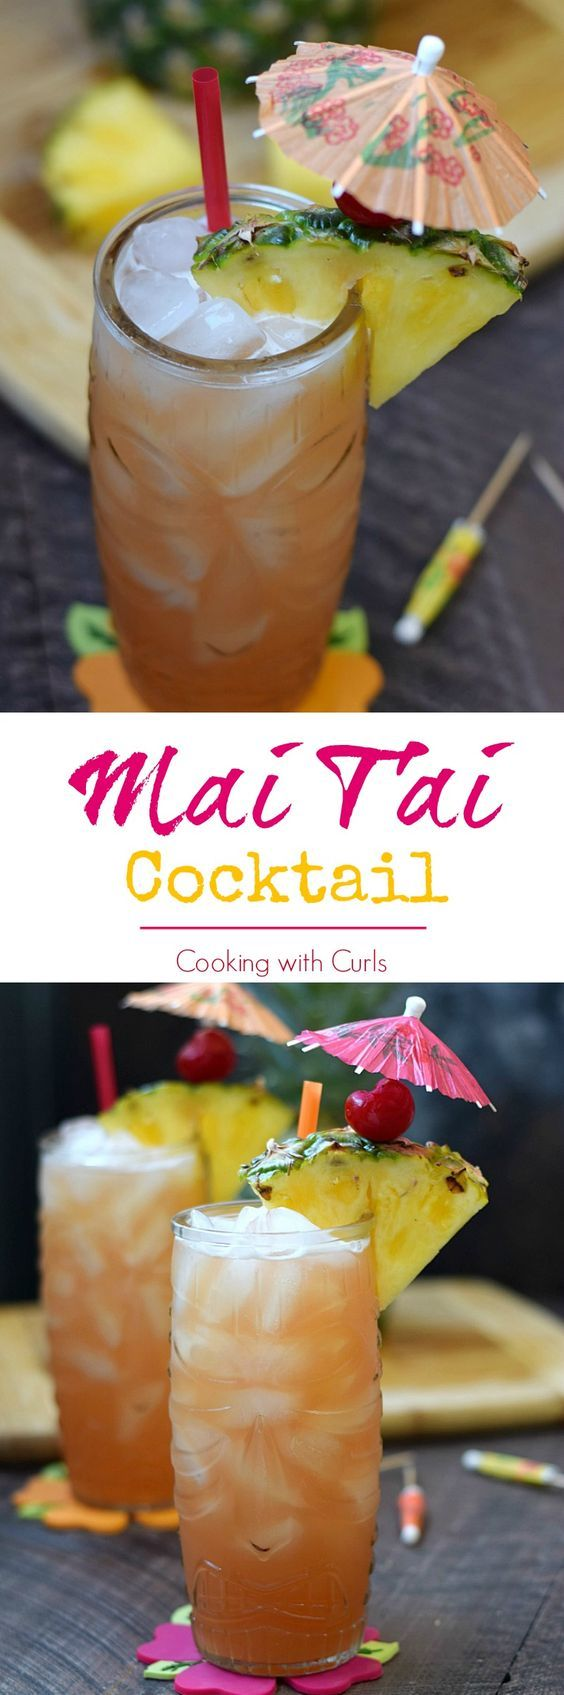 This tropical Mai Tai Cocktail will have you dreaming of the islands and fresh breezes in no time | cookingwithcurls.com